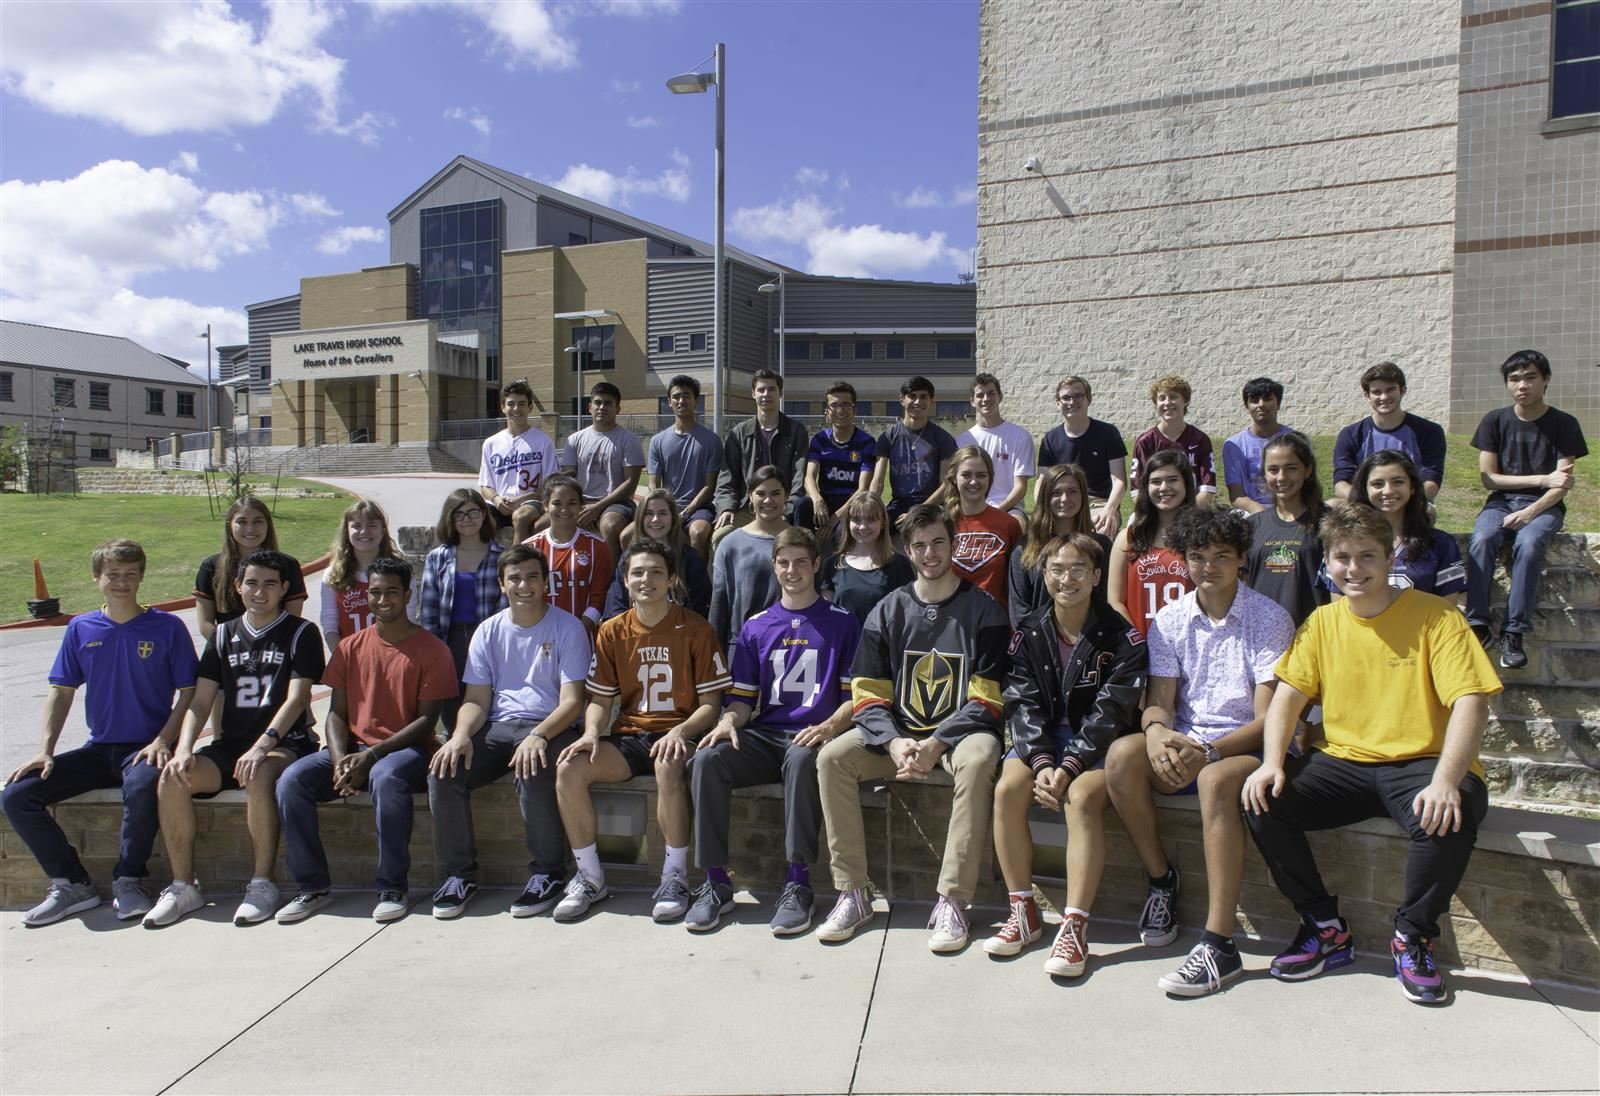 Thirty-seven students pose for a group photo.